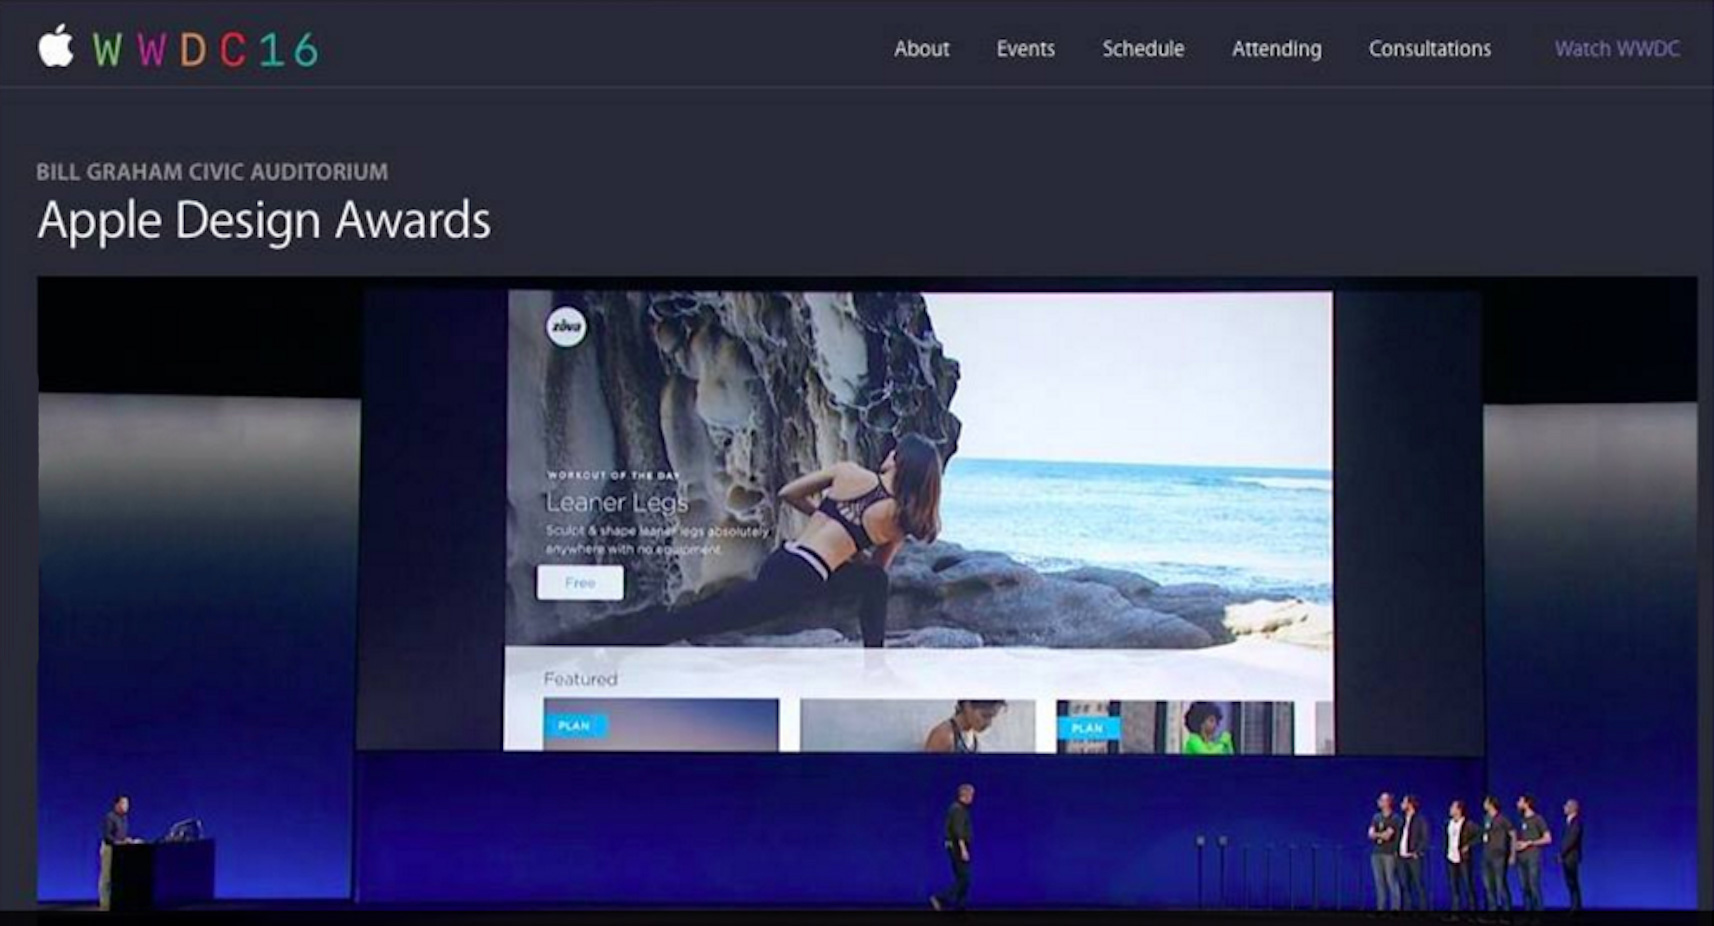 Zova wins Apple Design Award at Apple's 2016 Worldwide Developers Conference in San Francisco